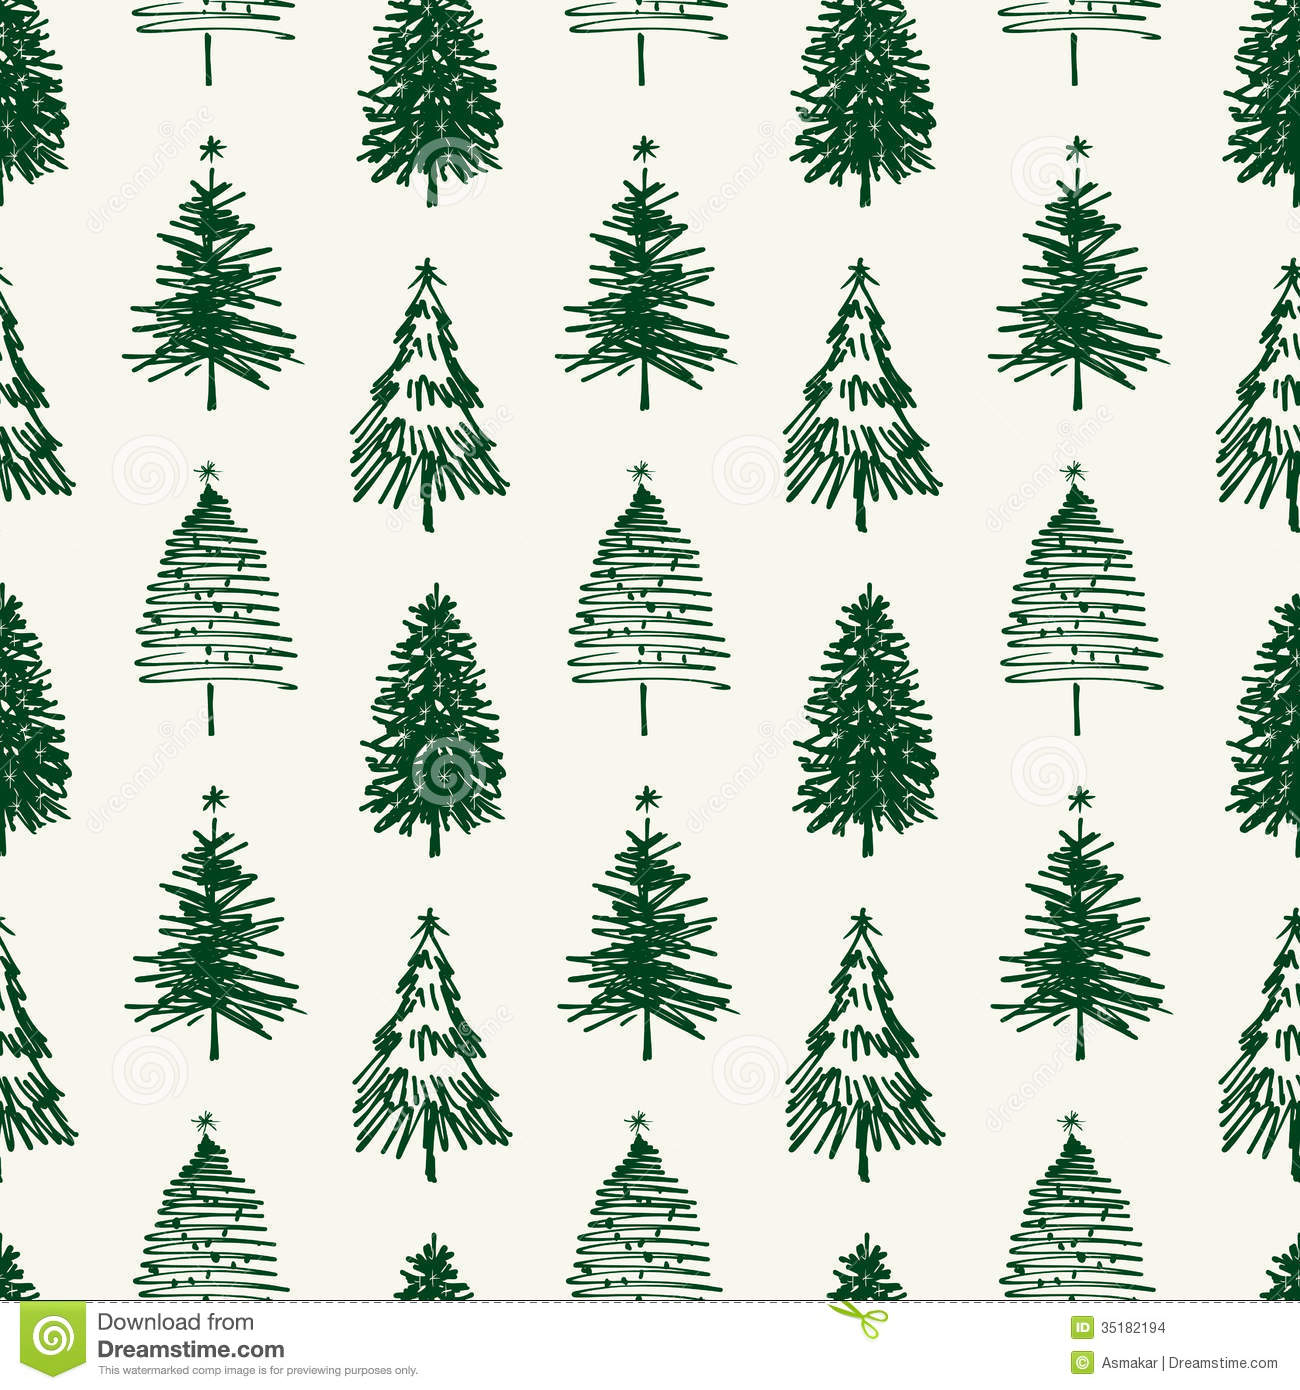 Christmas Tree Pattern.Pattern Of Christmas Trees Stock Vector Illustration Of